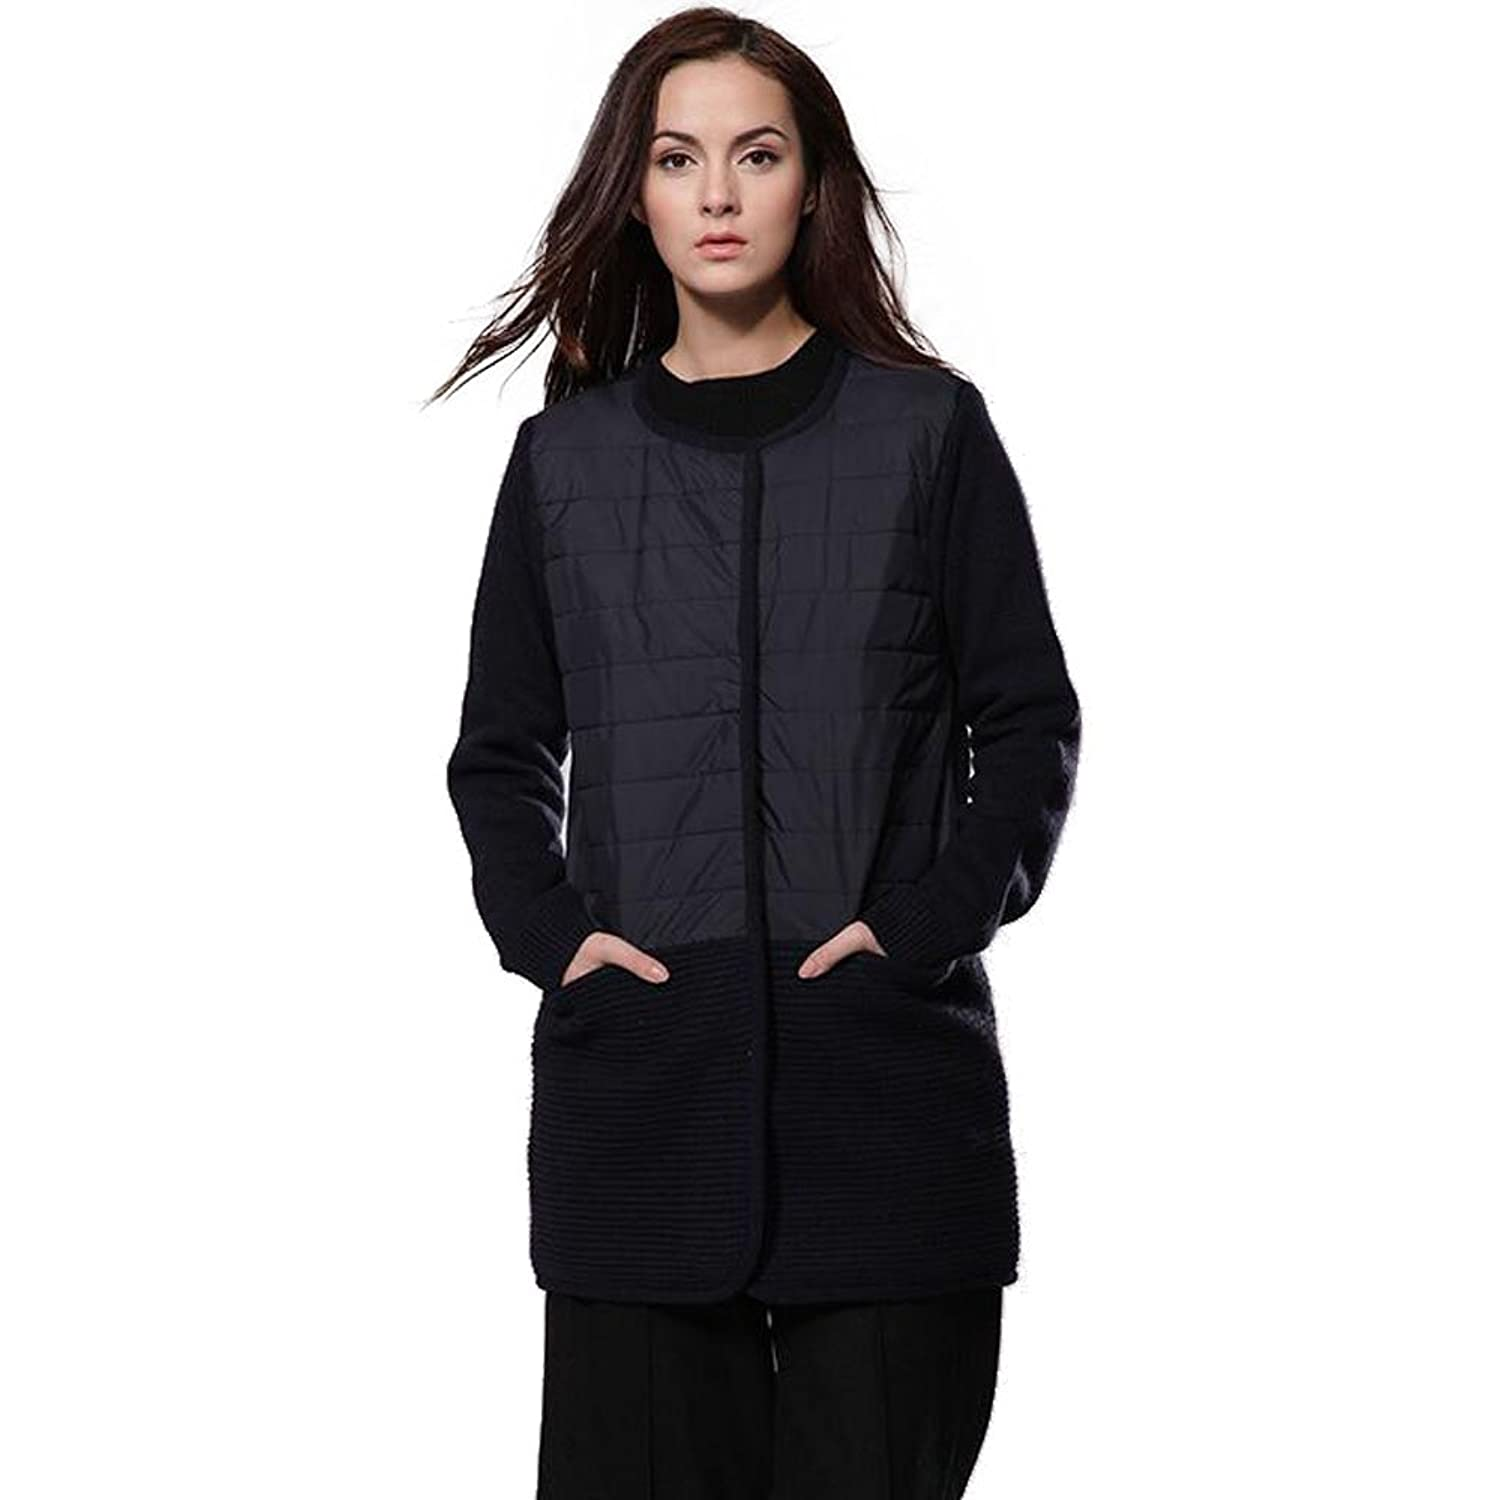 Women's loose round neck patchwork open front middle-long cardigan sweater coat